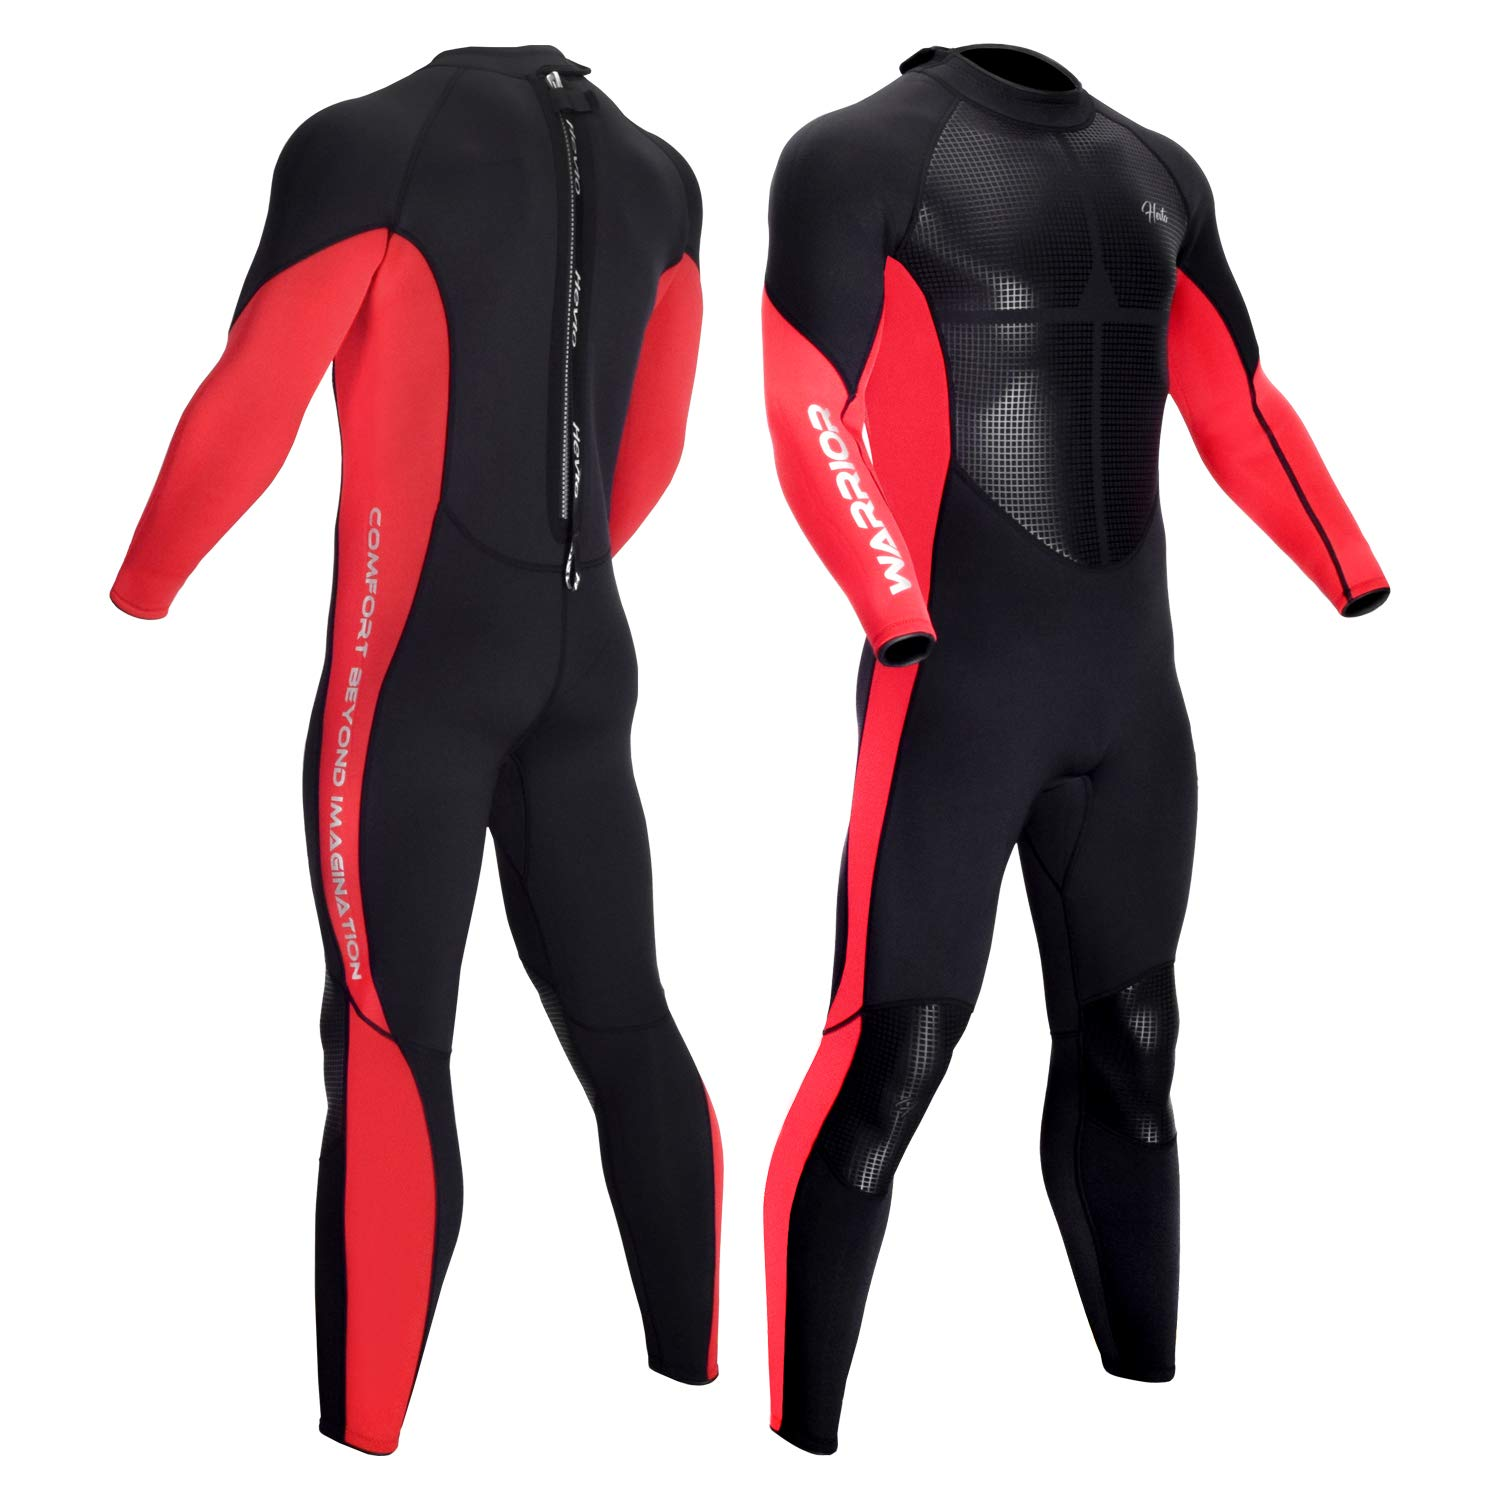 Hevto Wetsuits Men 3mm Neoprene Adult Long Sleeve Fullsuit Scuba Diving Suits Surfing Swimming Keep Warm Back Zip for Underwater Sports (Red Men Ⅱ, XXL) by Hevto